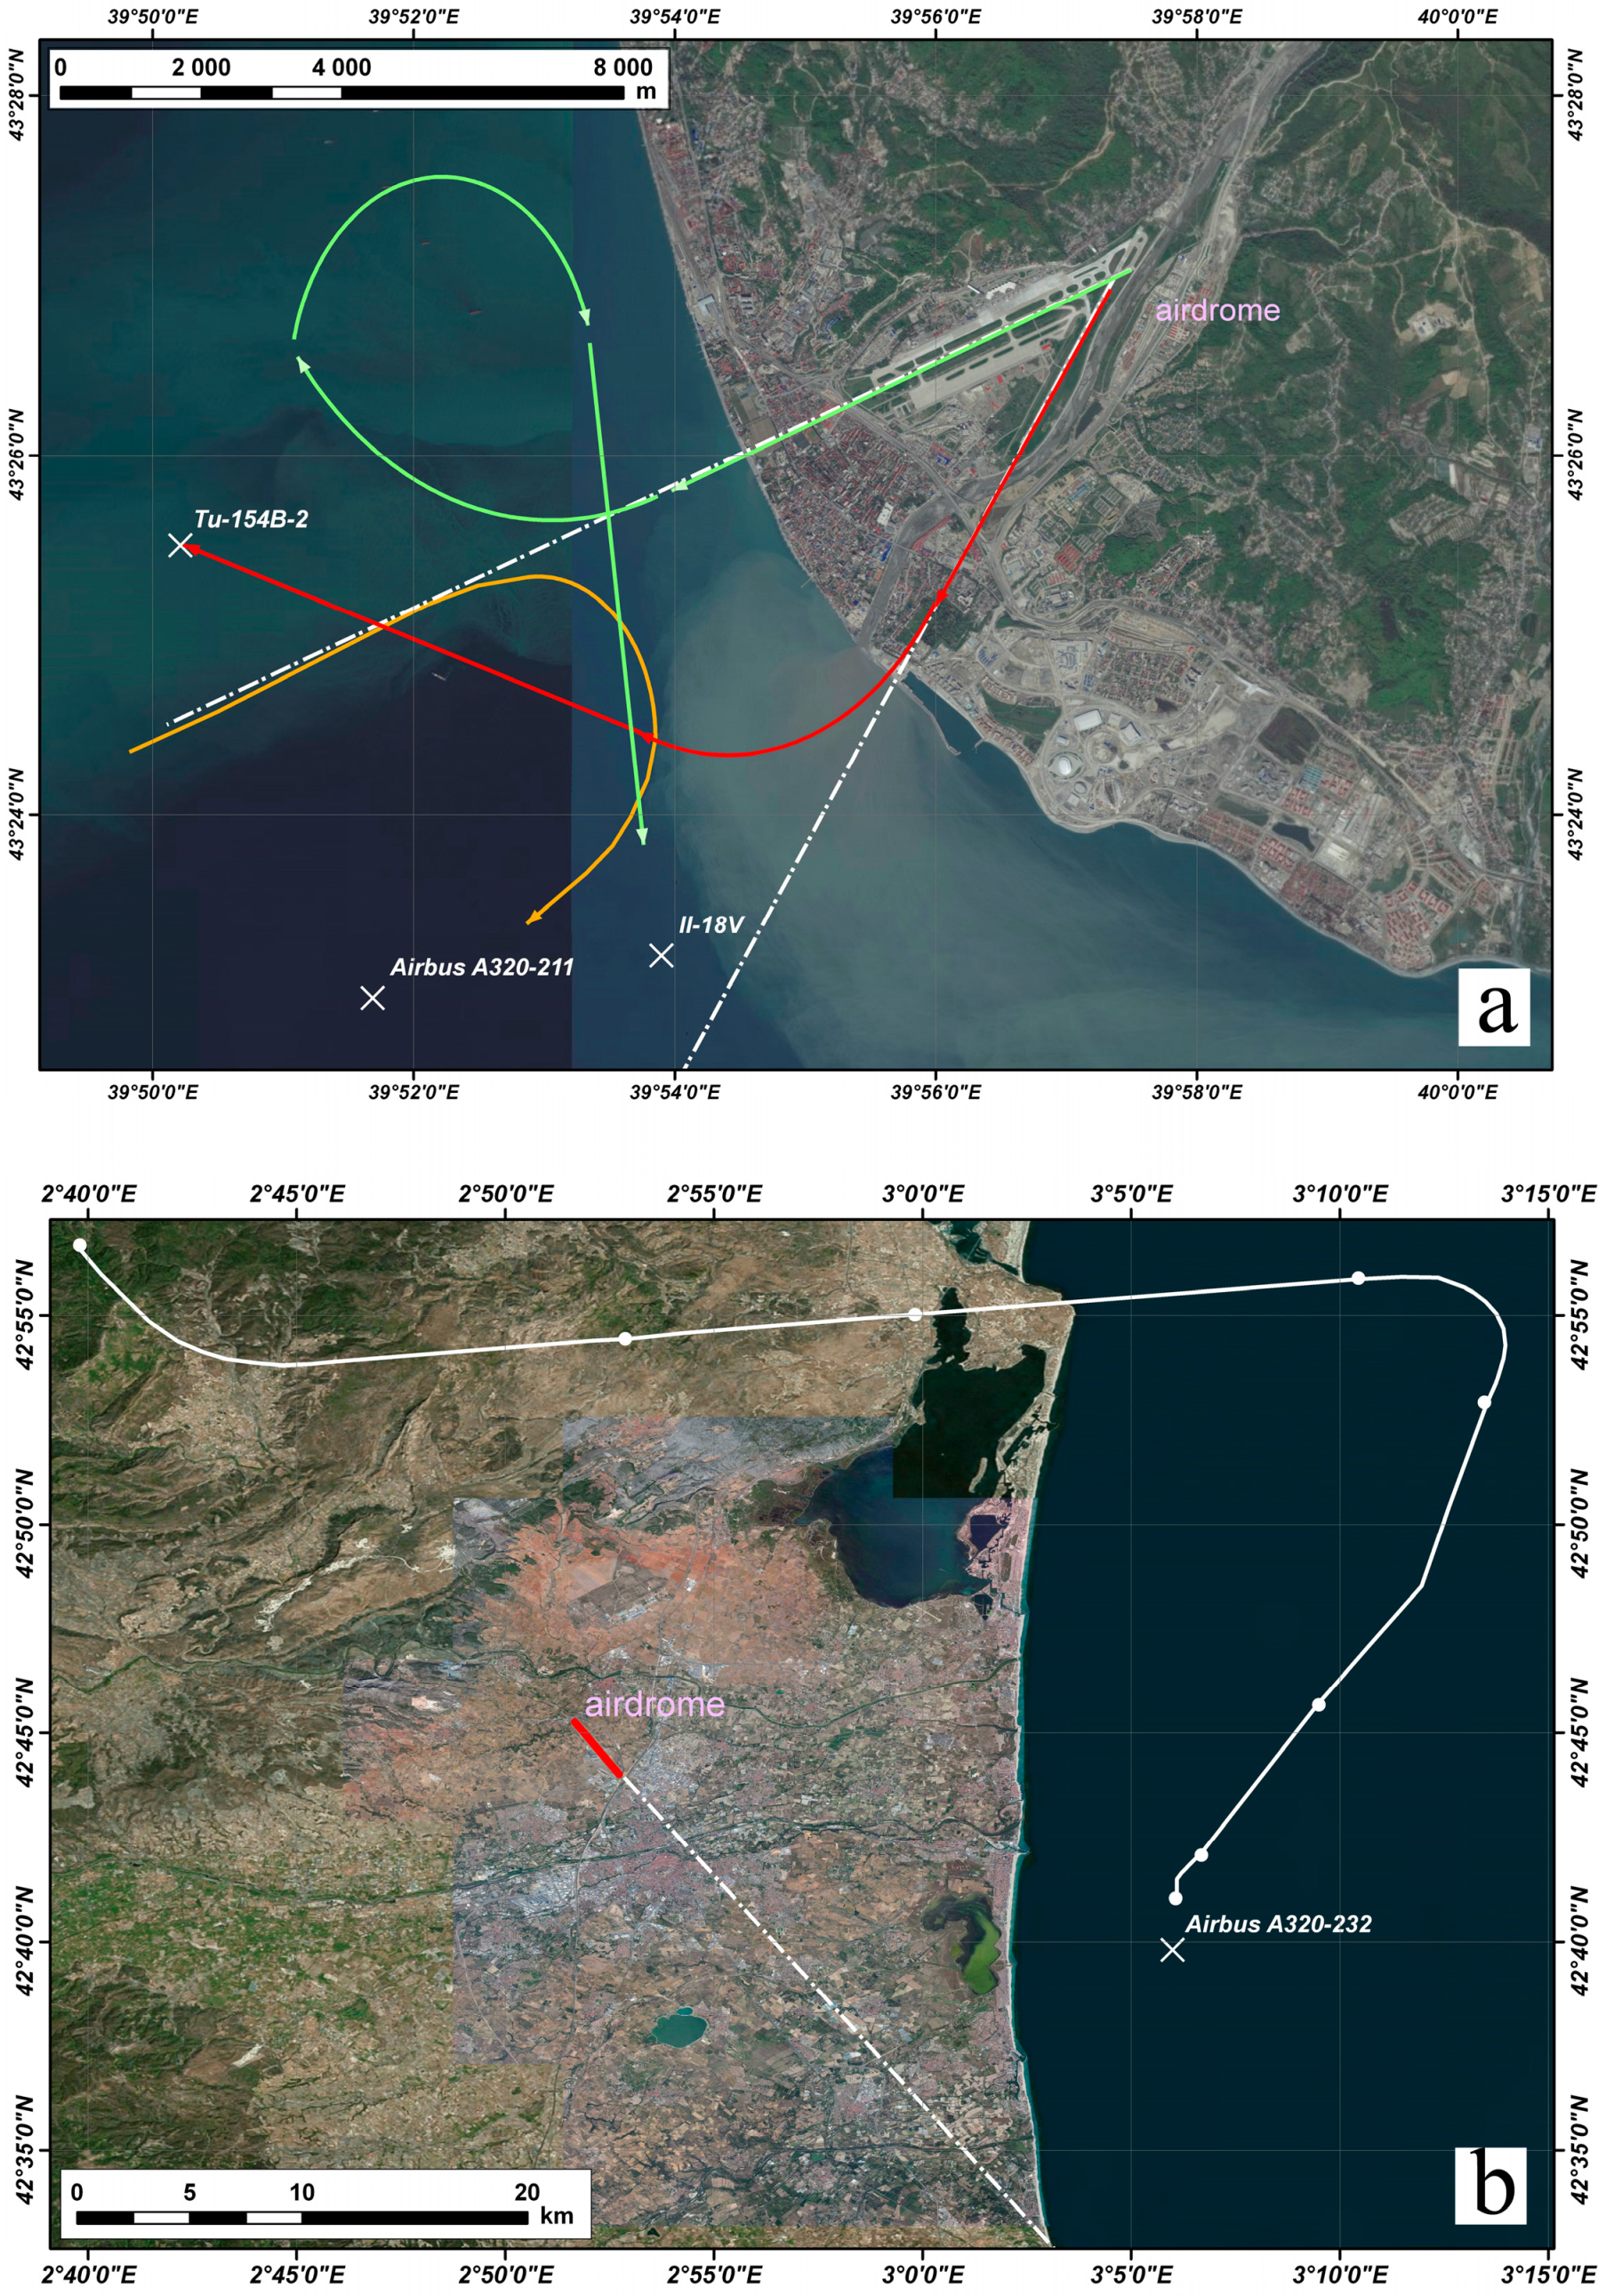 Atmosphere | Free Full-Text | Aviation Meteorology at